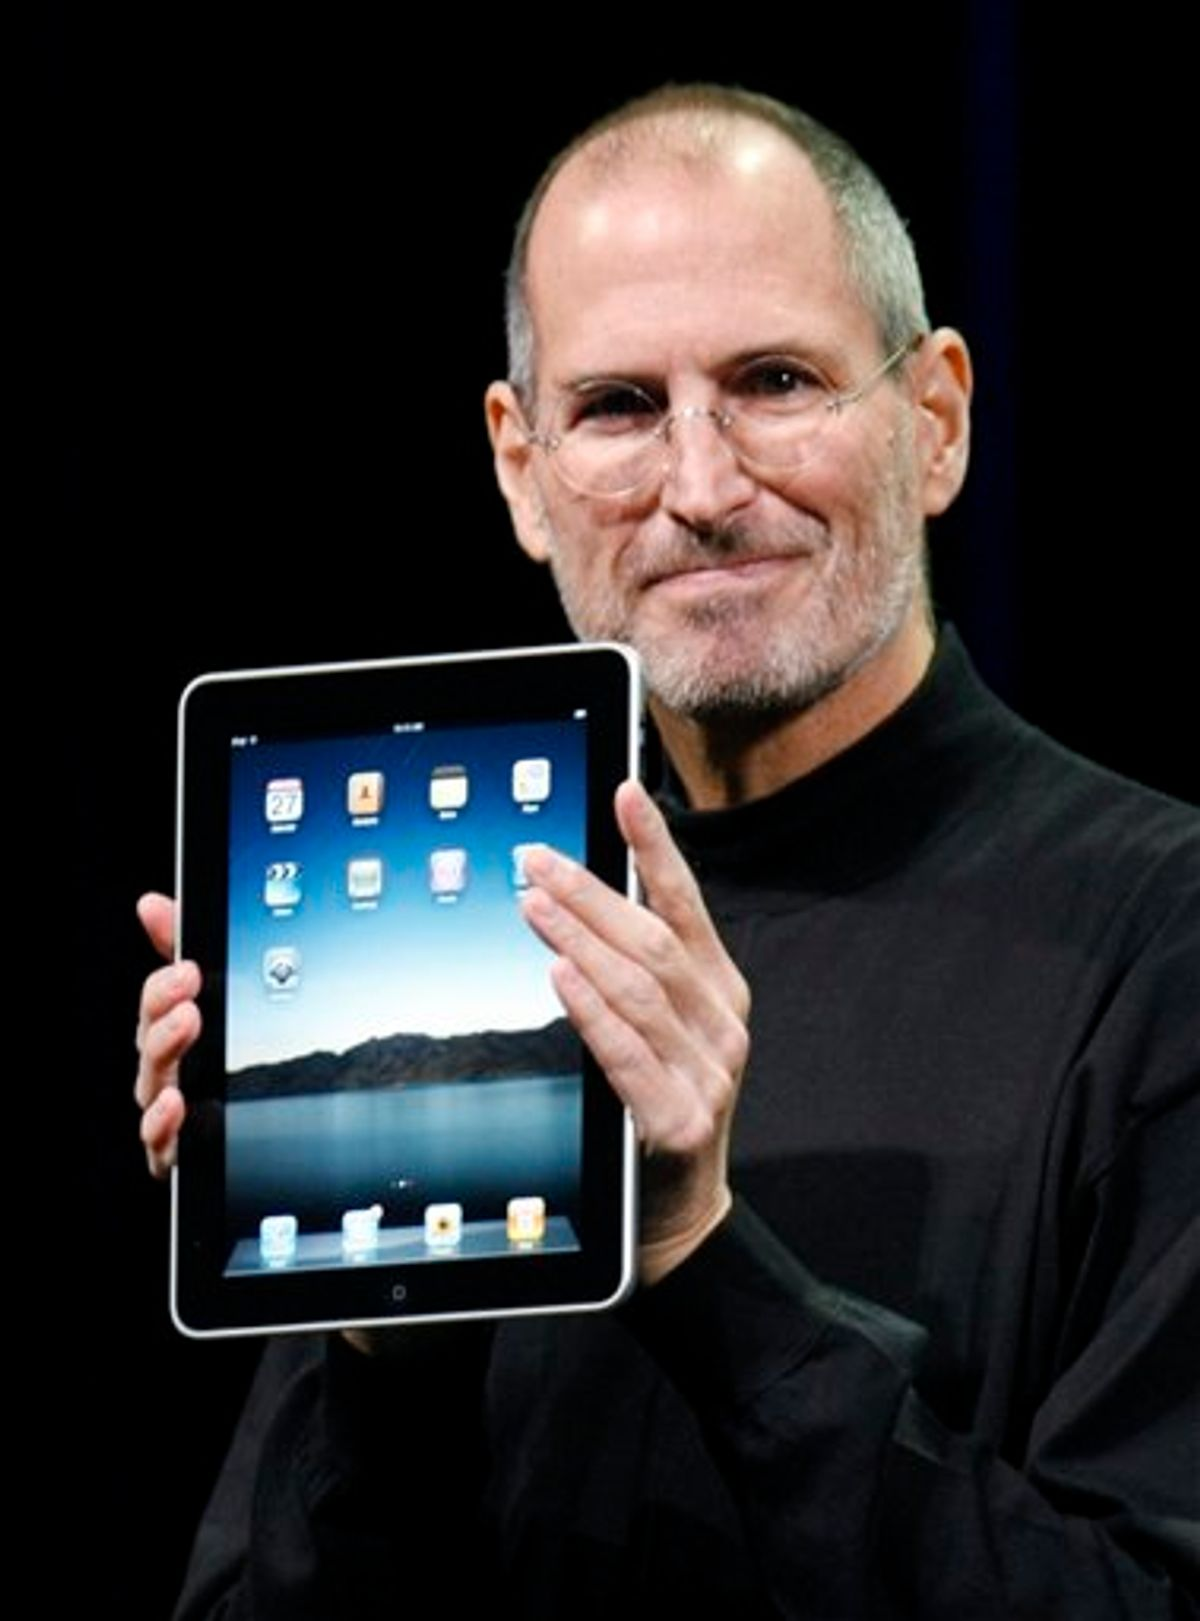 FILE - A Jan. 27, 2010 file photo shows Apple CEO Steve Jobs holding up the new iPad during a product announcement in San Francisco. Jobs sent a note Monday, Jan. 17, 2011 to employees saying he's taking a medical leave of absence so he can focus on his health. He says he will continue as CEO and be involved in major decisions but has asked Tim Cook to be responsible for all day-to-day operations. (AP Photo/Paul Sakuma, File) (AP)